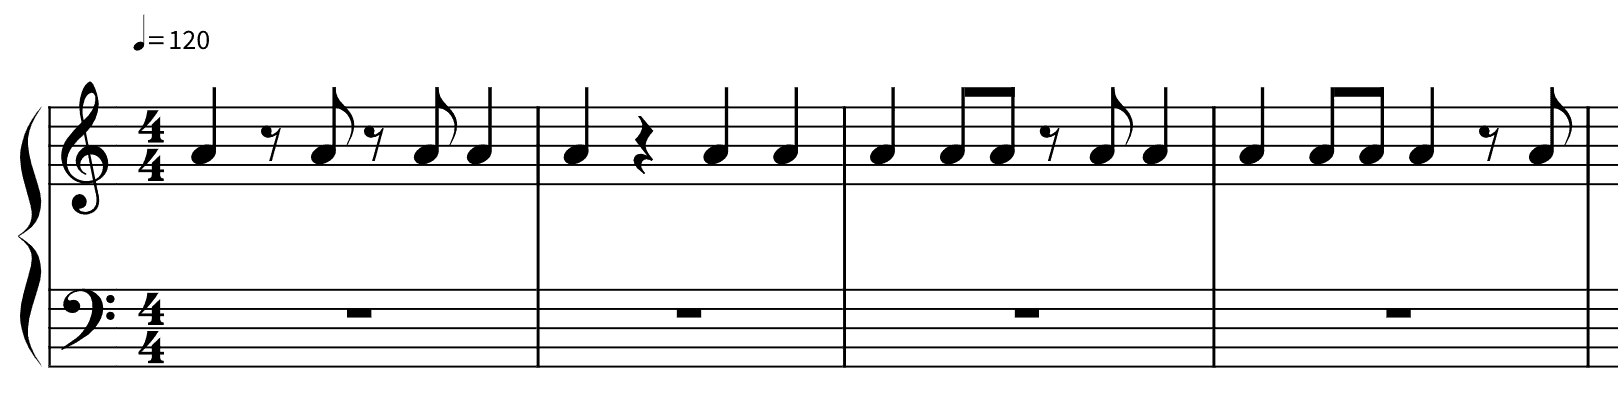 snare drum exercise